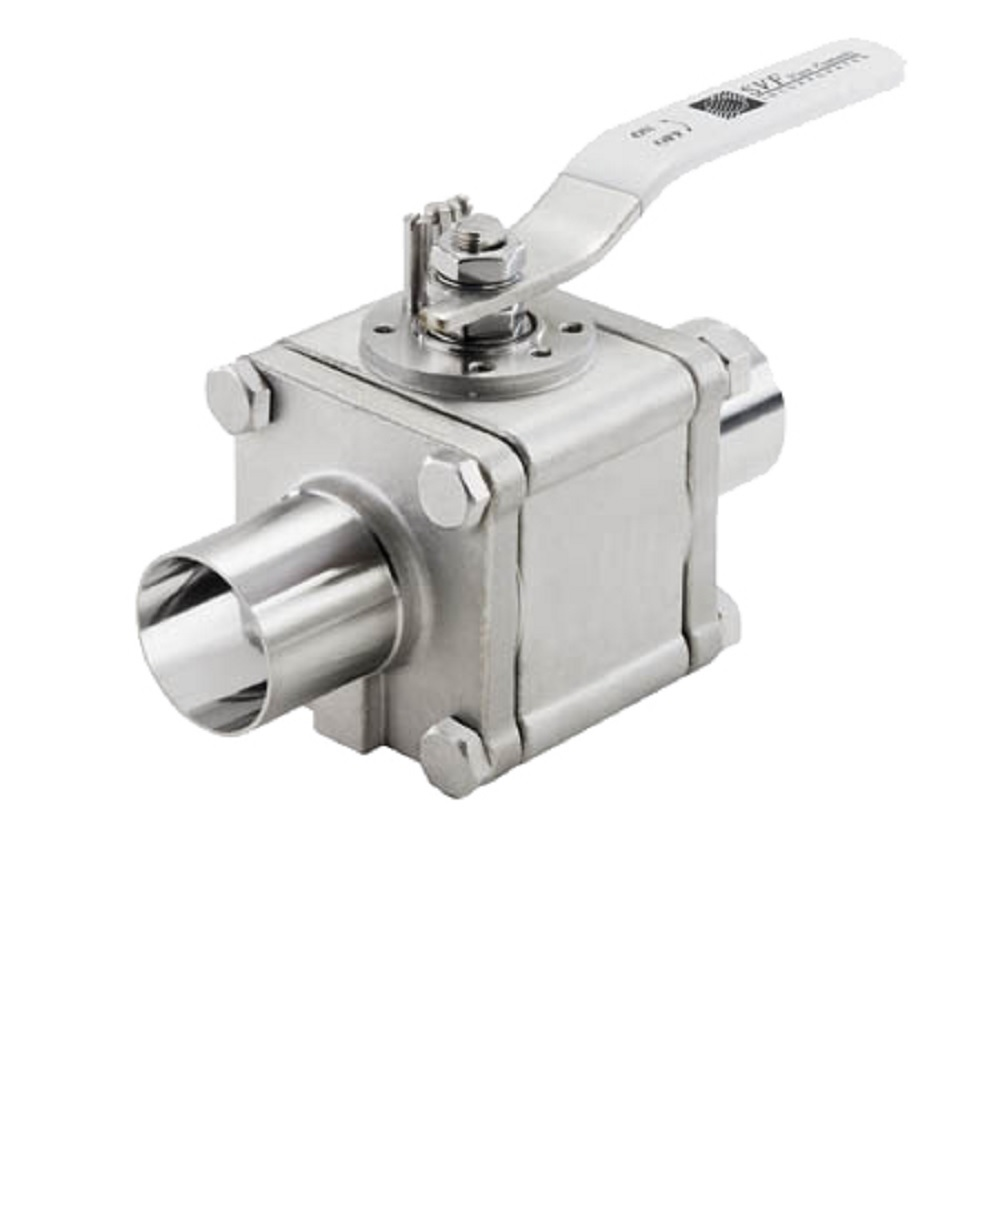 Hygienic ASME BPE Ball Valves